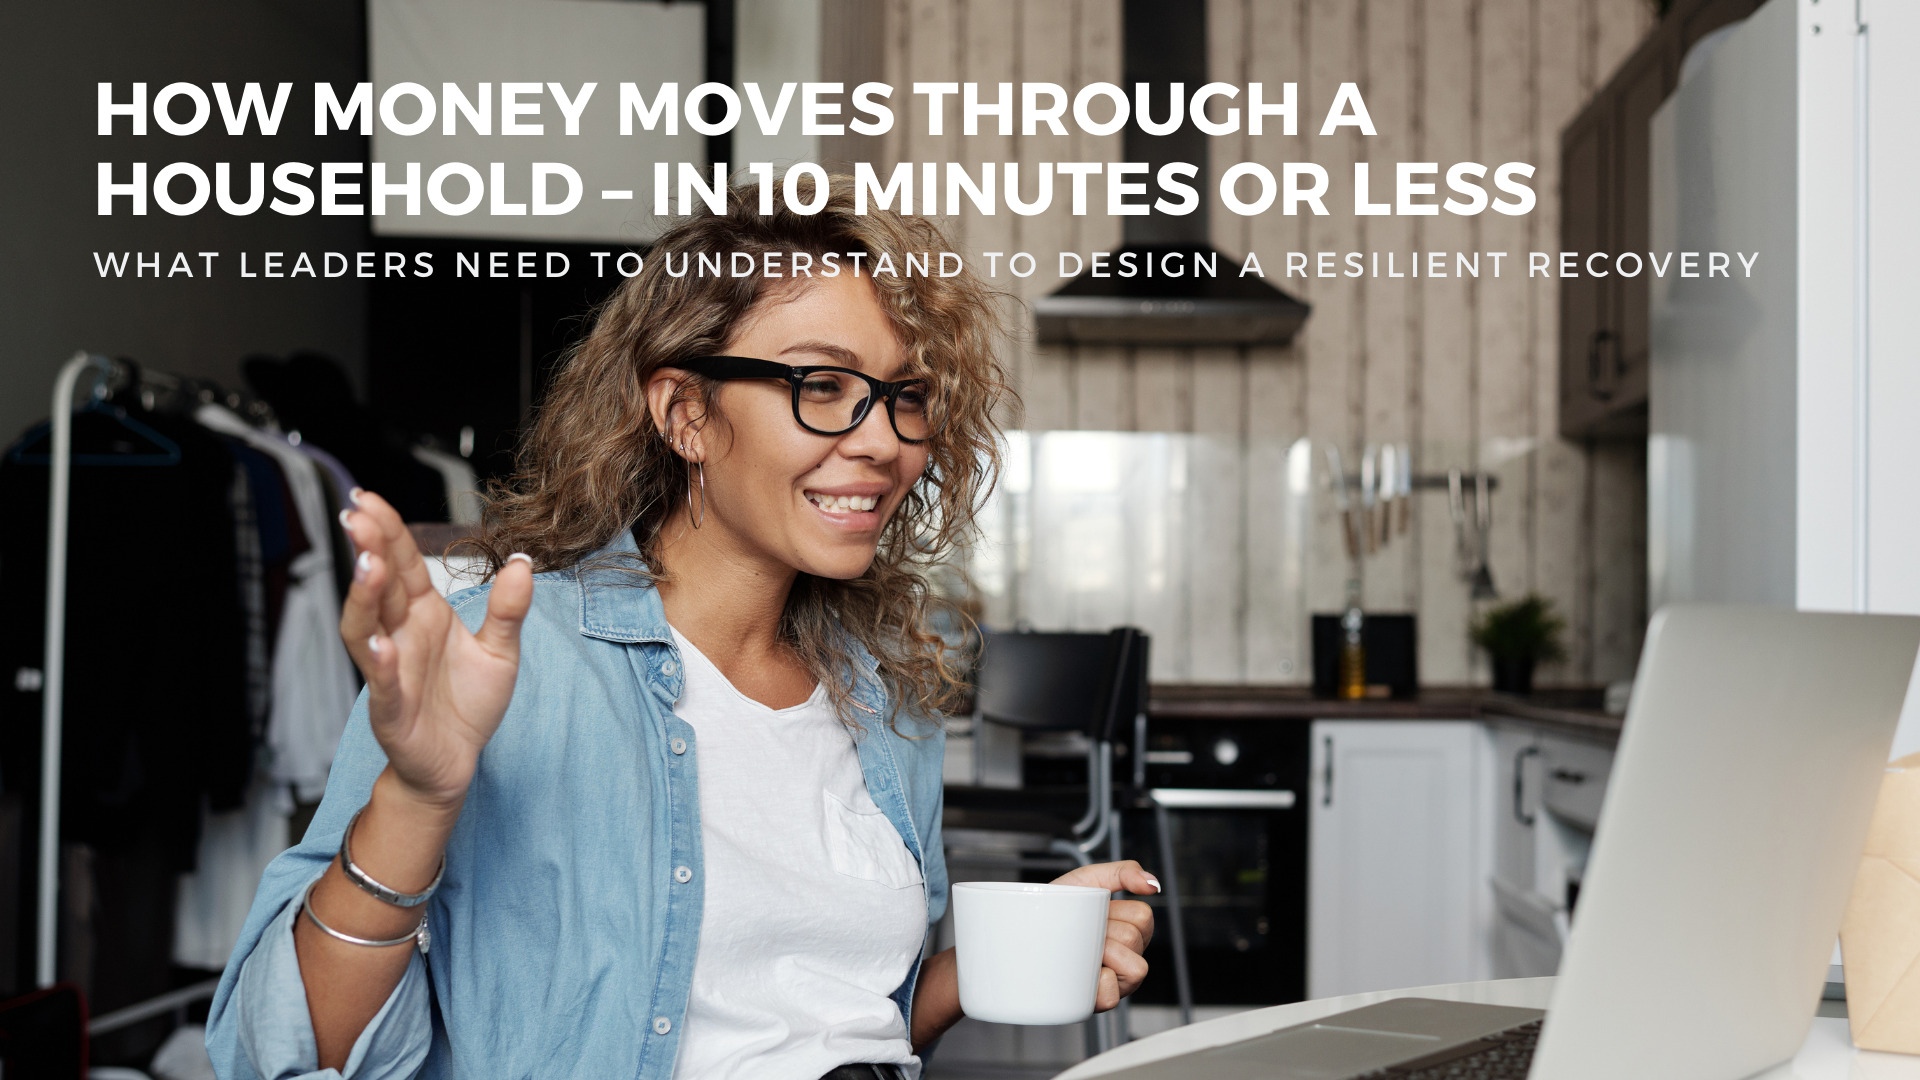 How Money Moves through a Household – in 10 Minutes or Less